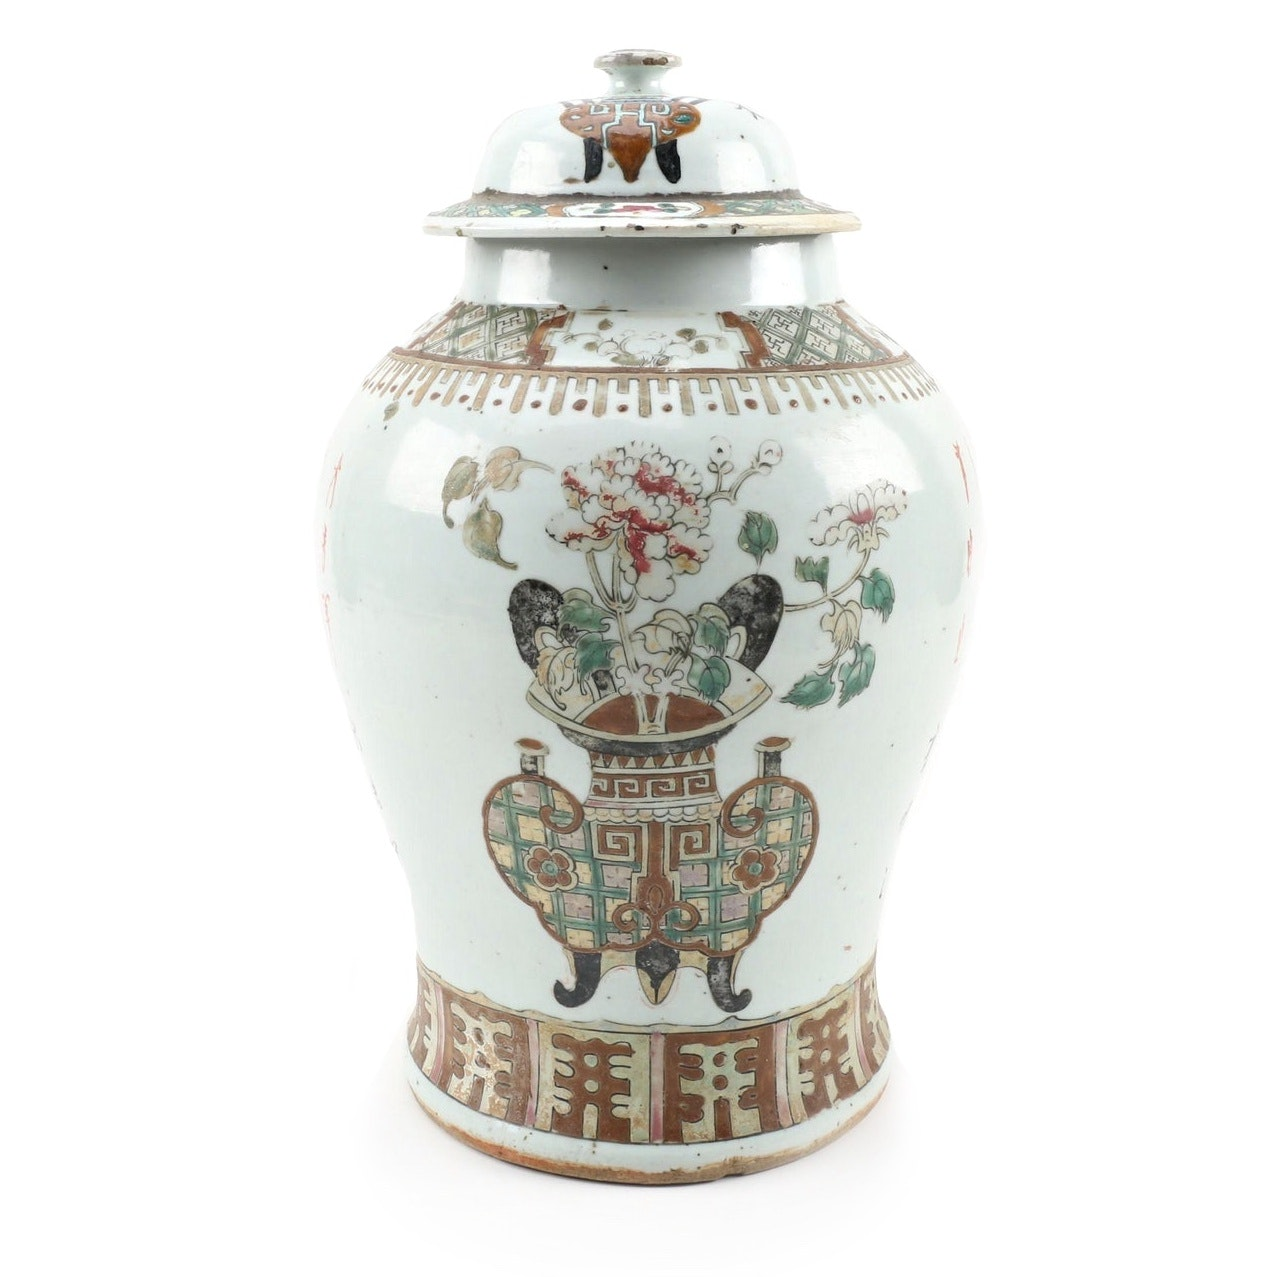 Chinese Porcelain Ginger Jar, Late Qing/Republic